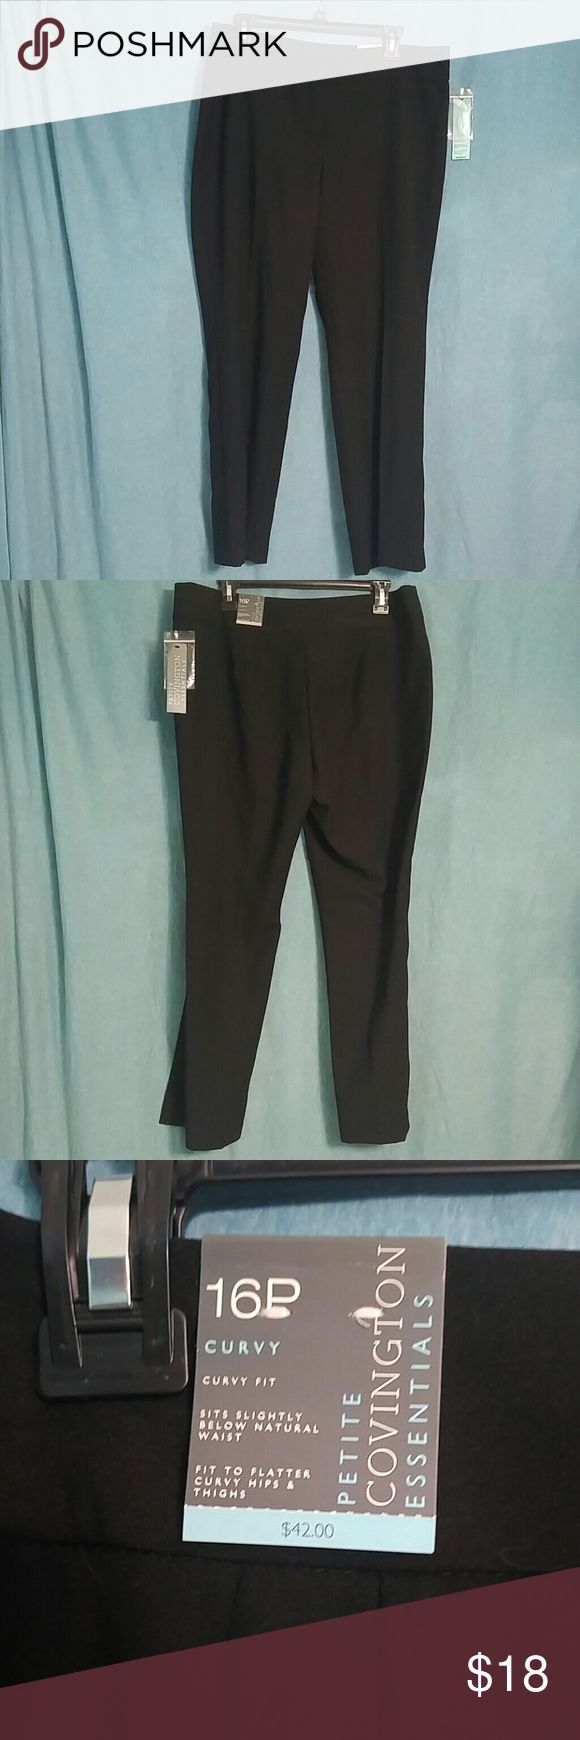 Black lightweight dress pants size 16 p Covington brand petite size 16 lightweight cotton black dress pants right for work out shopping or a night at dinner with a lovely blouse sweater lightweight enough to wear through spring and summer Covington Pants Trousers